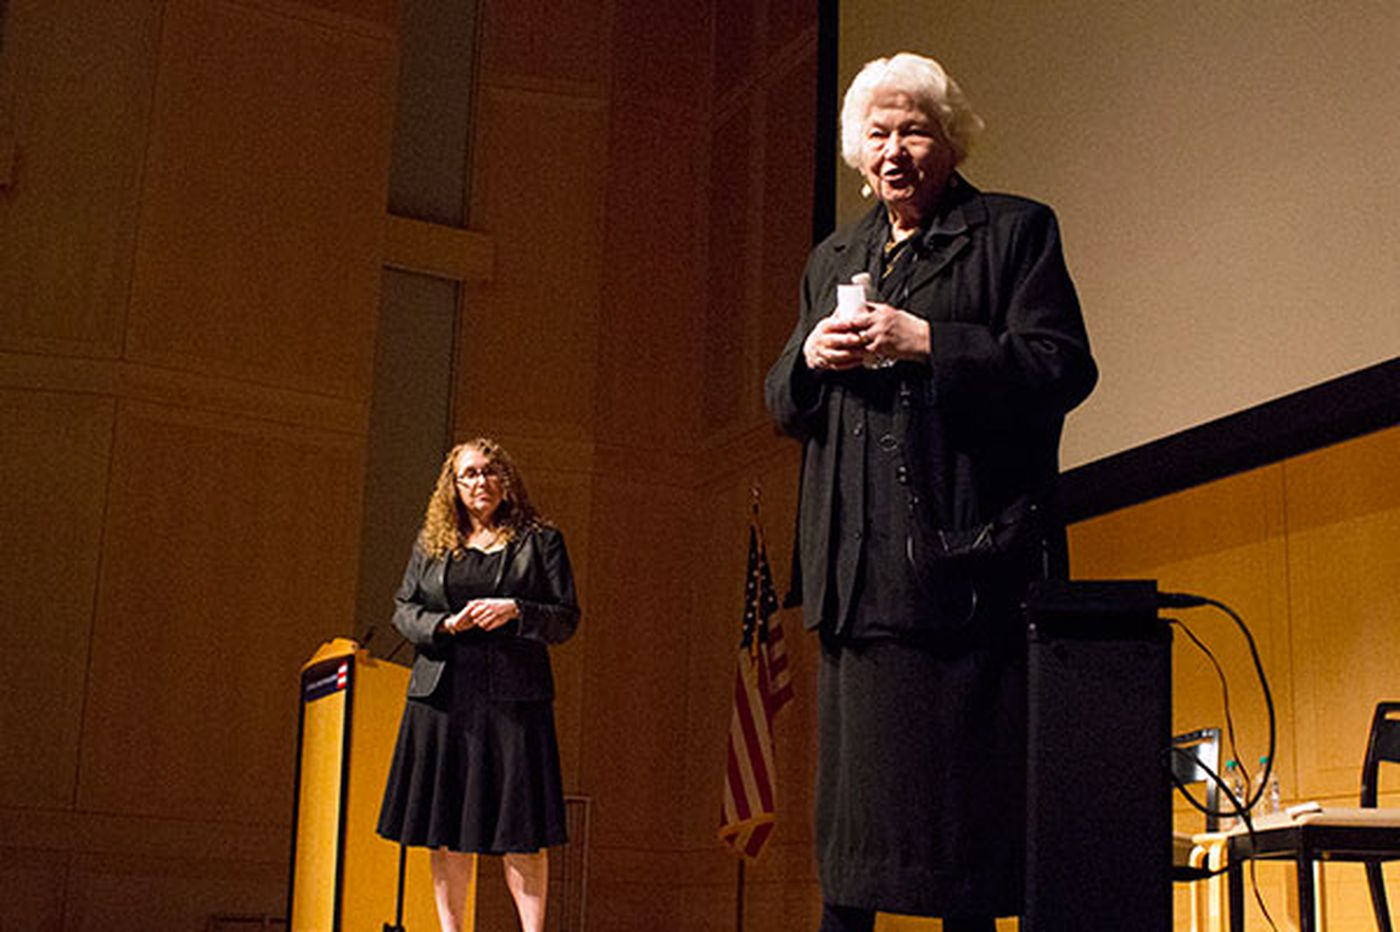 A Holocaust survivor's passion for civil rights